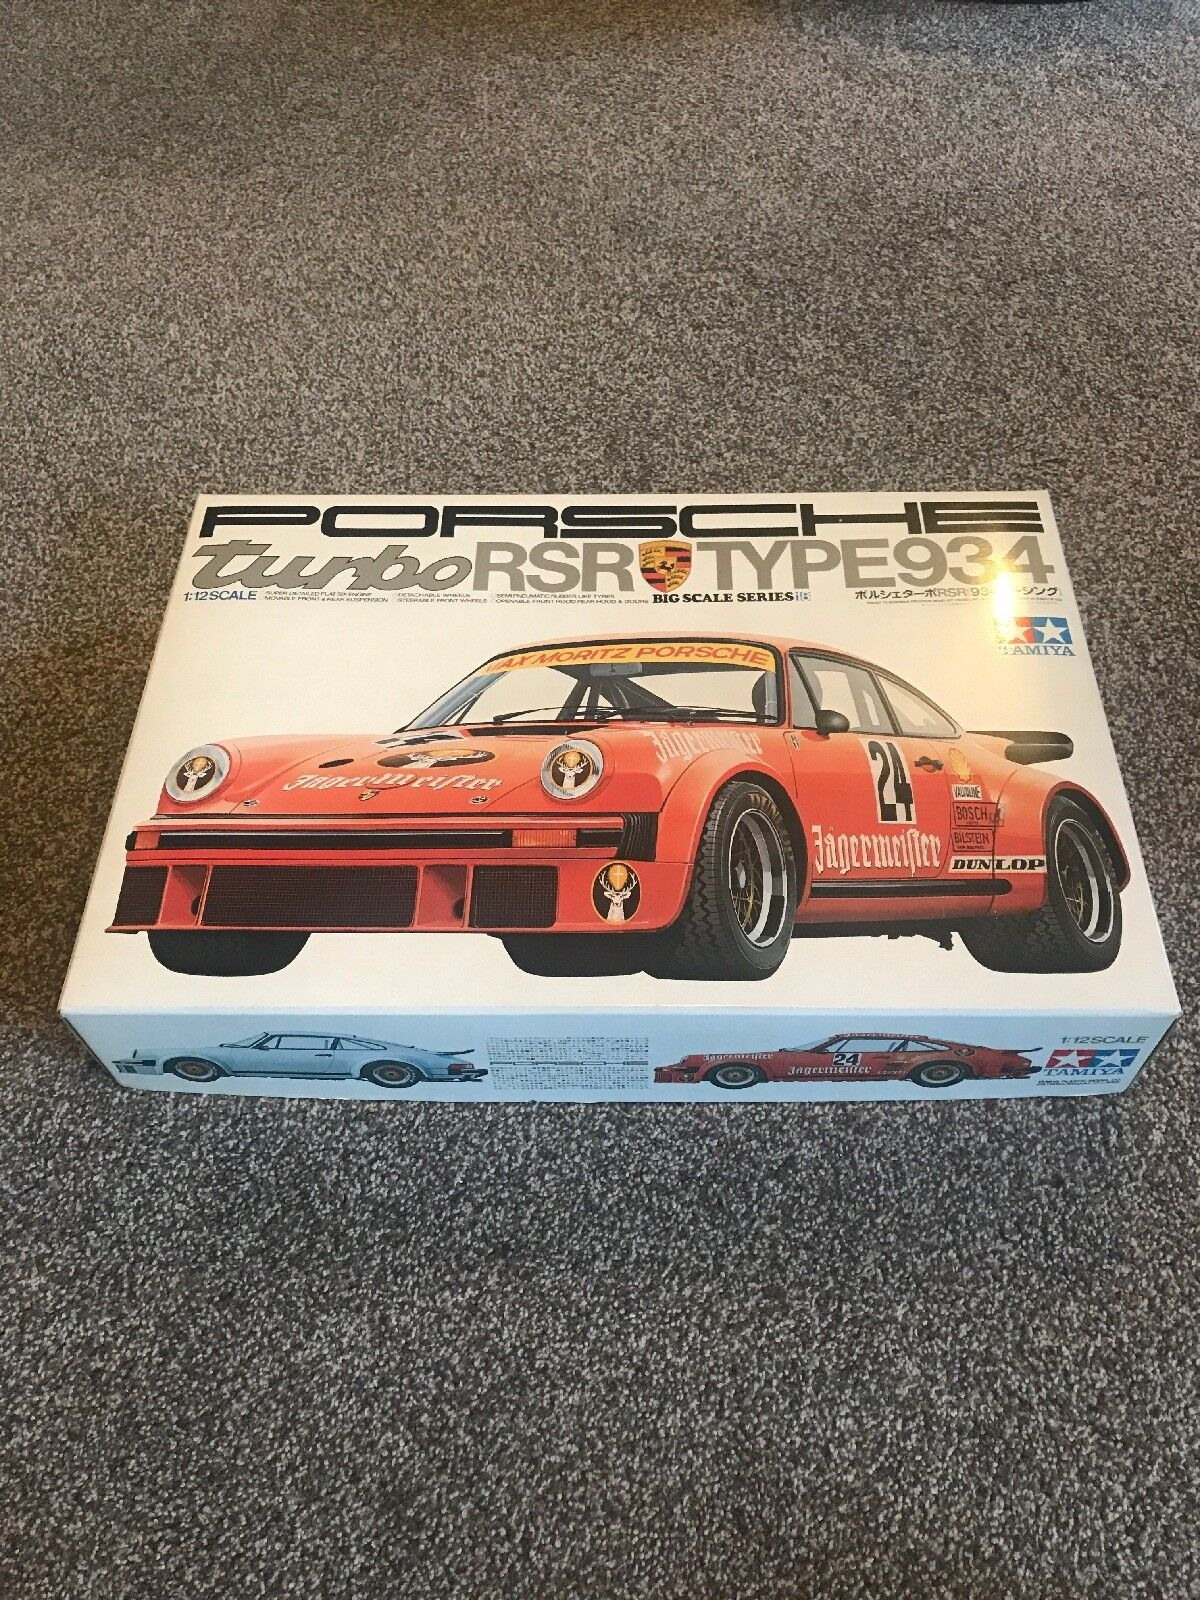 Tamiya 1 12 Porsche 934 Turbo Rsr Big Scale kit